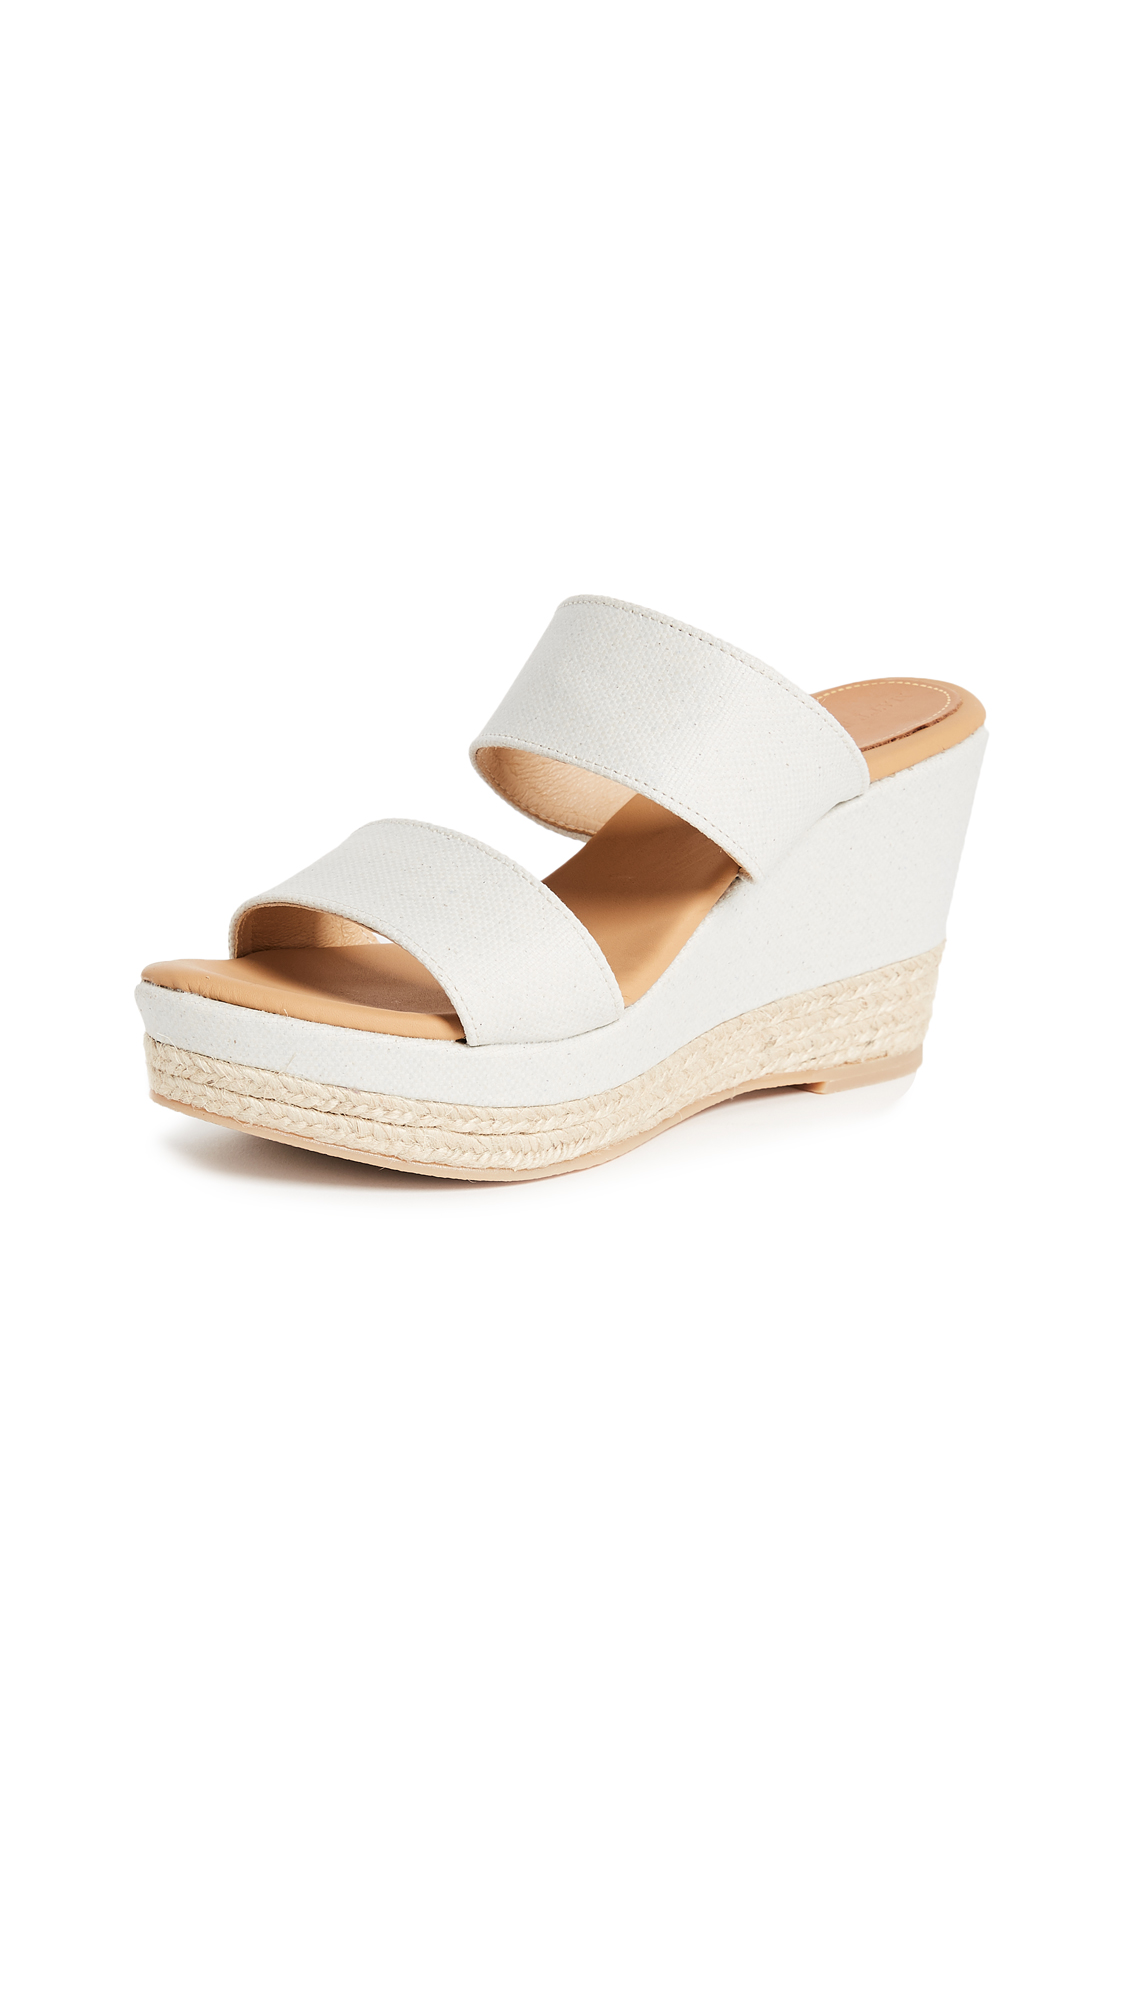 Matt Bernson Icaria Wedges - White